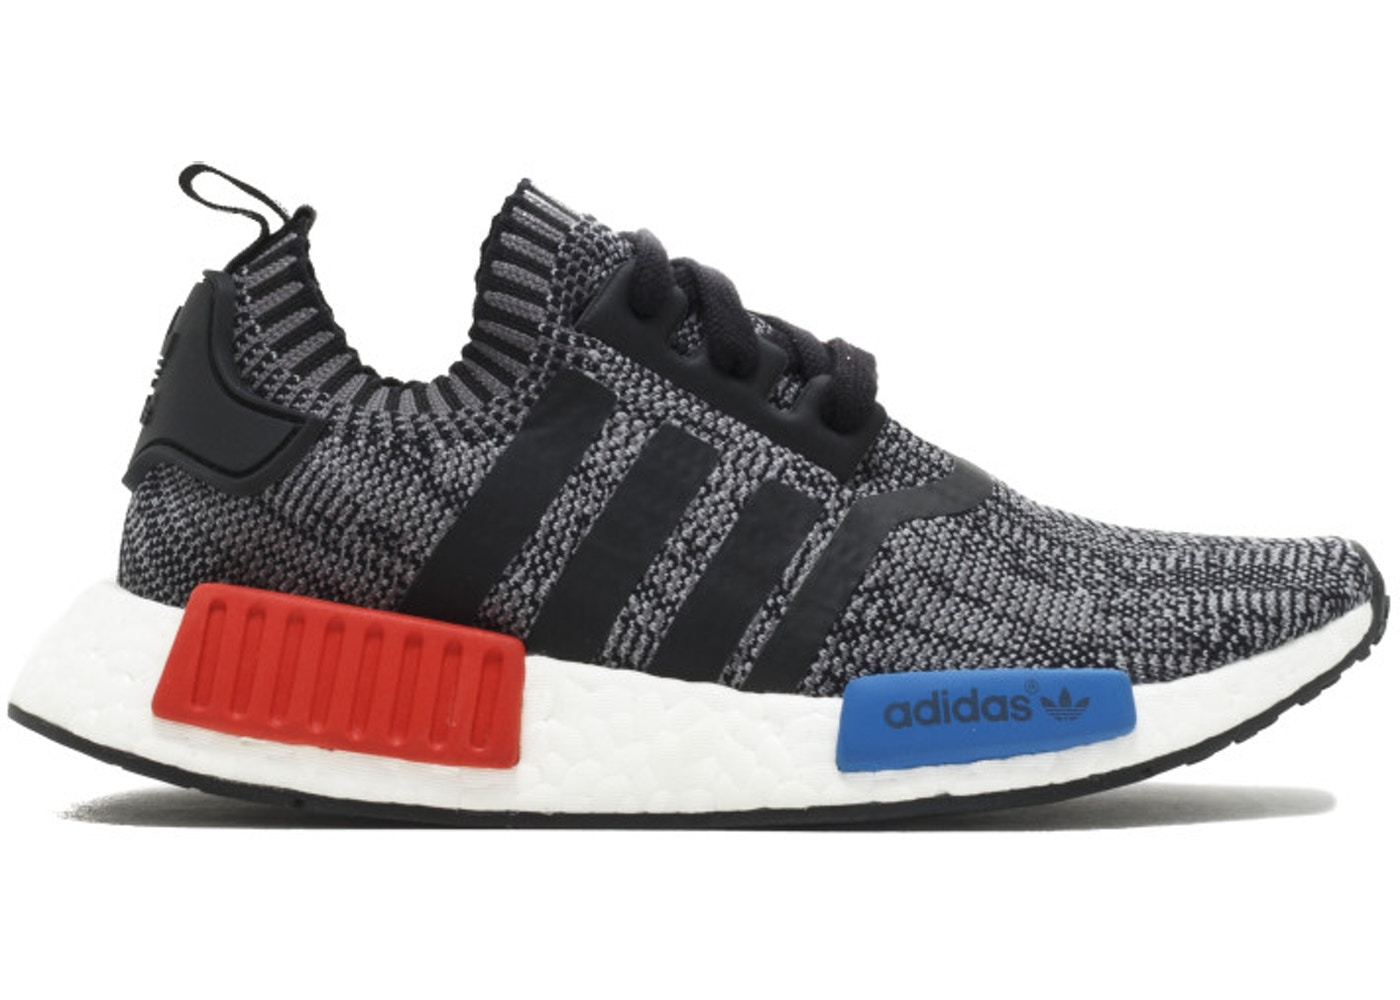 5c6df4526 adidas NMD R1 Primeknit Friends and Family - N00001